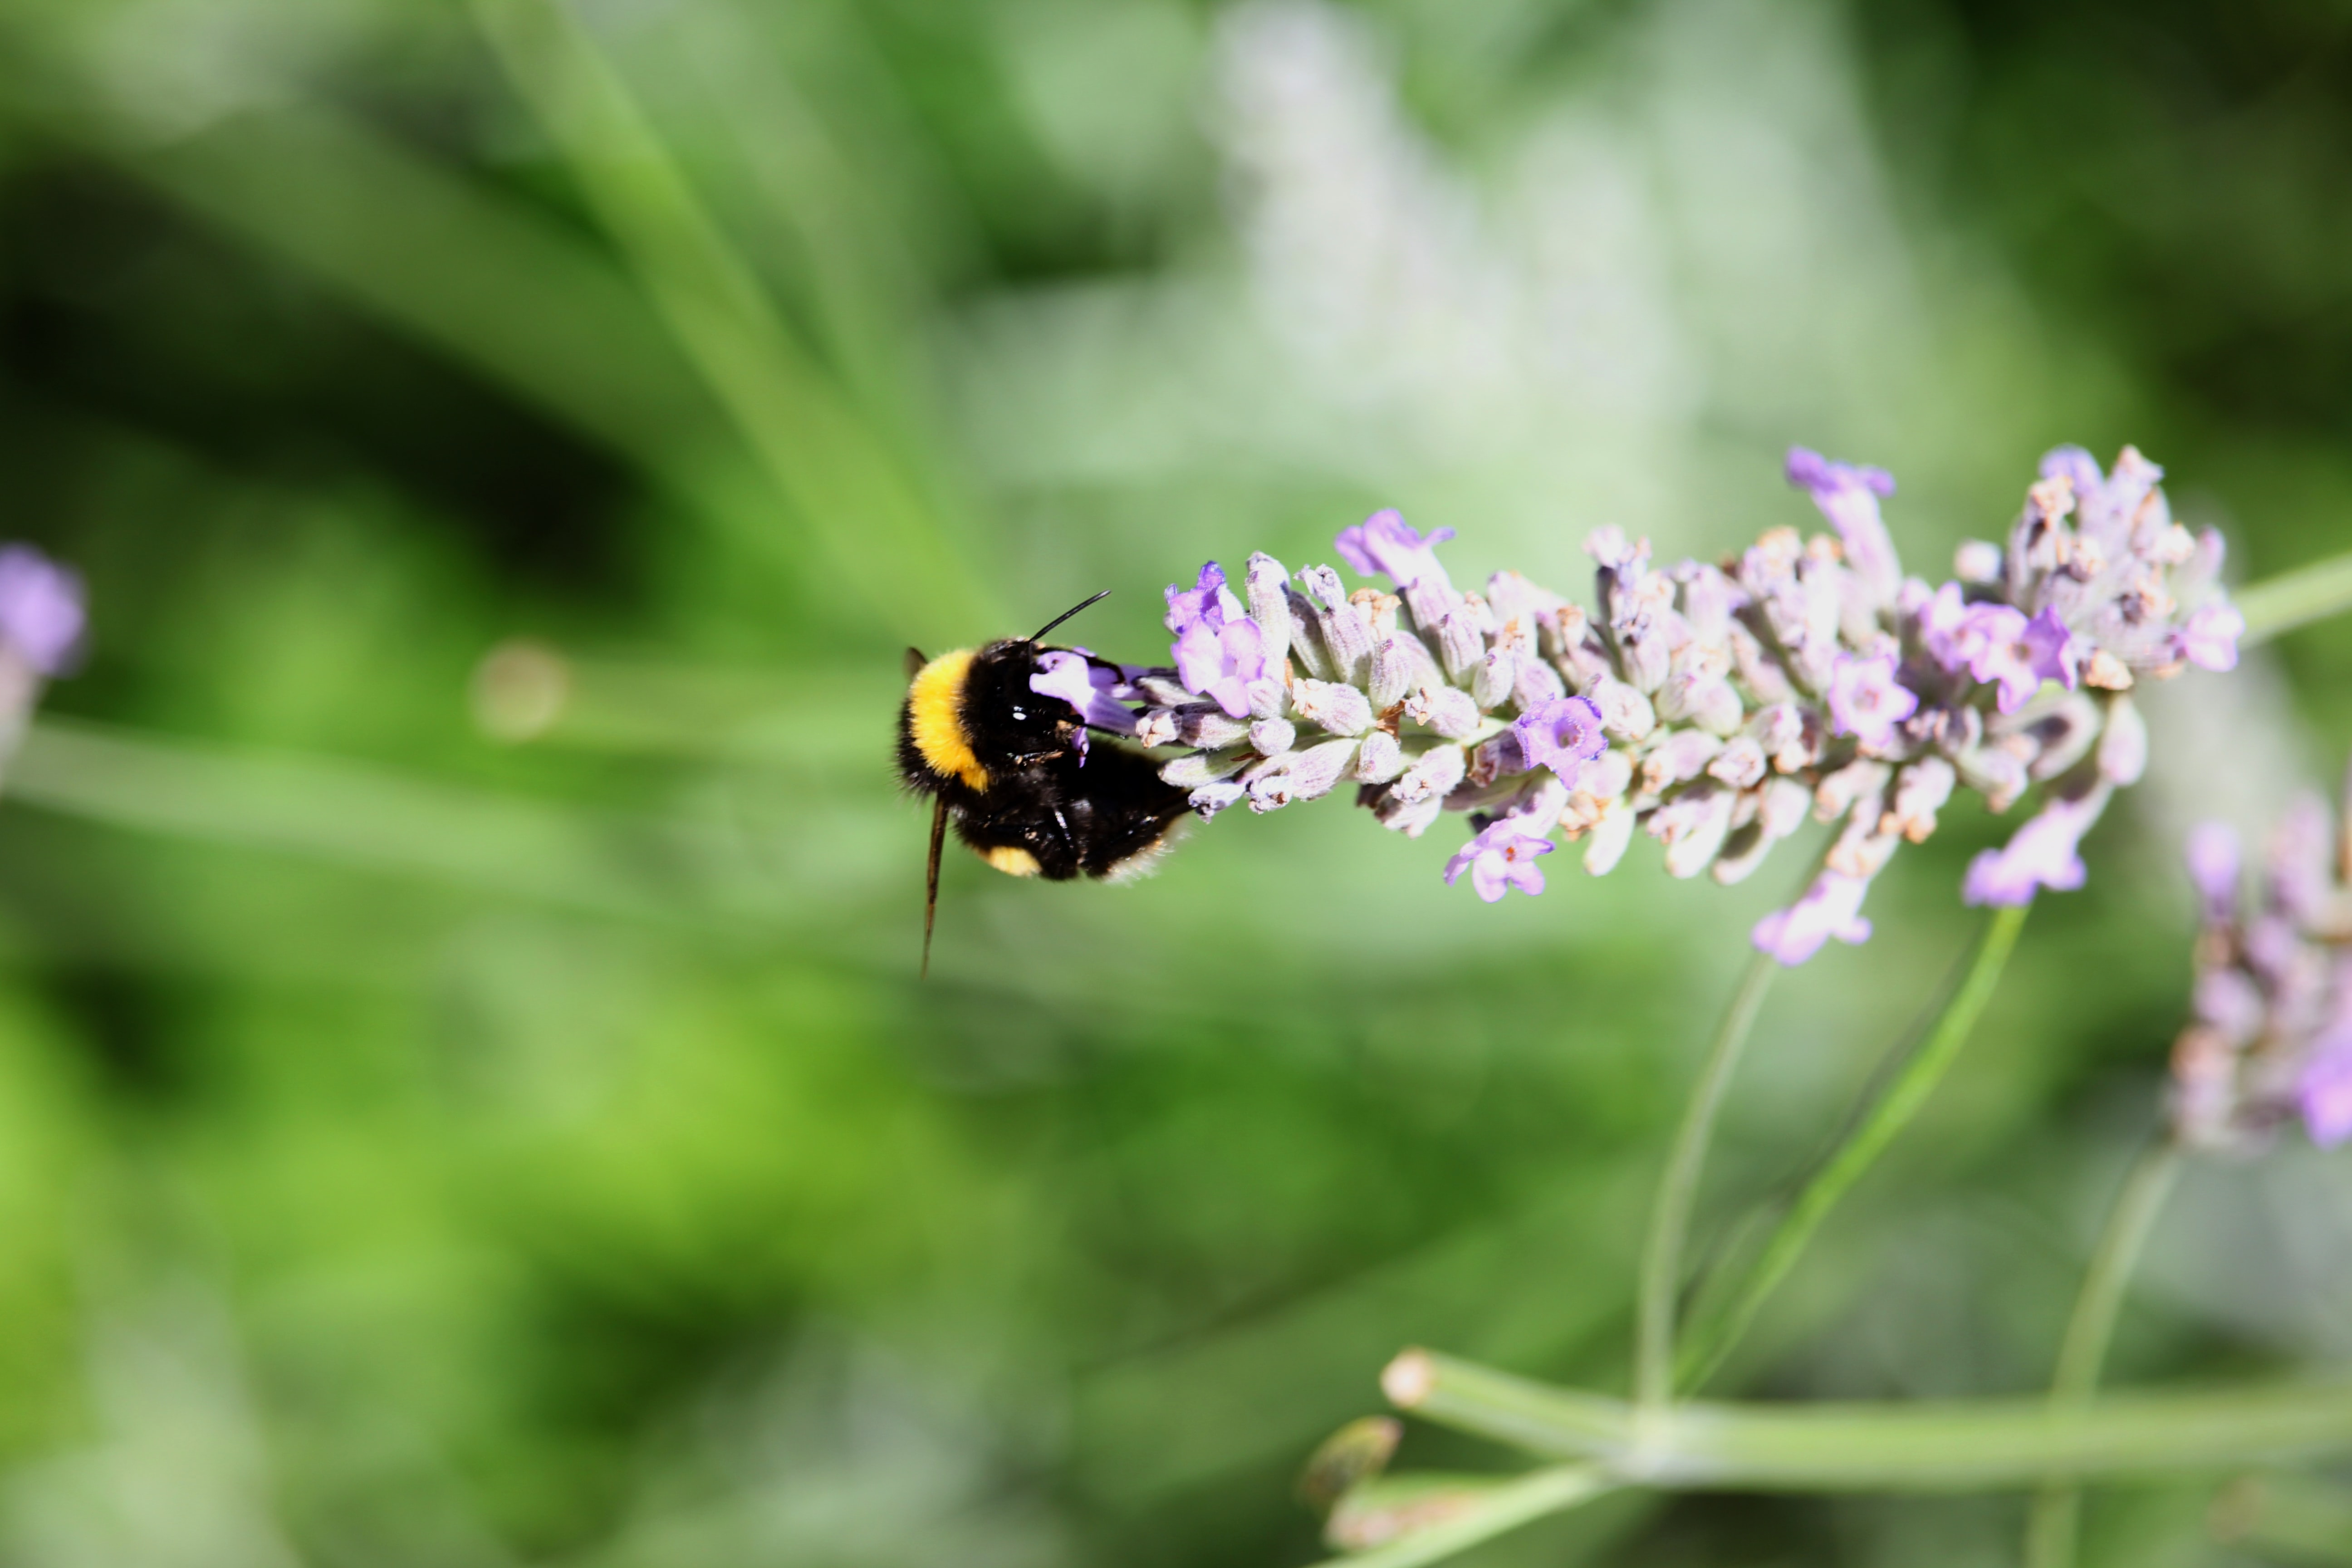 Bumblebee pollinates flowers on a lavender plant